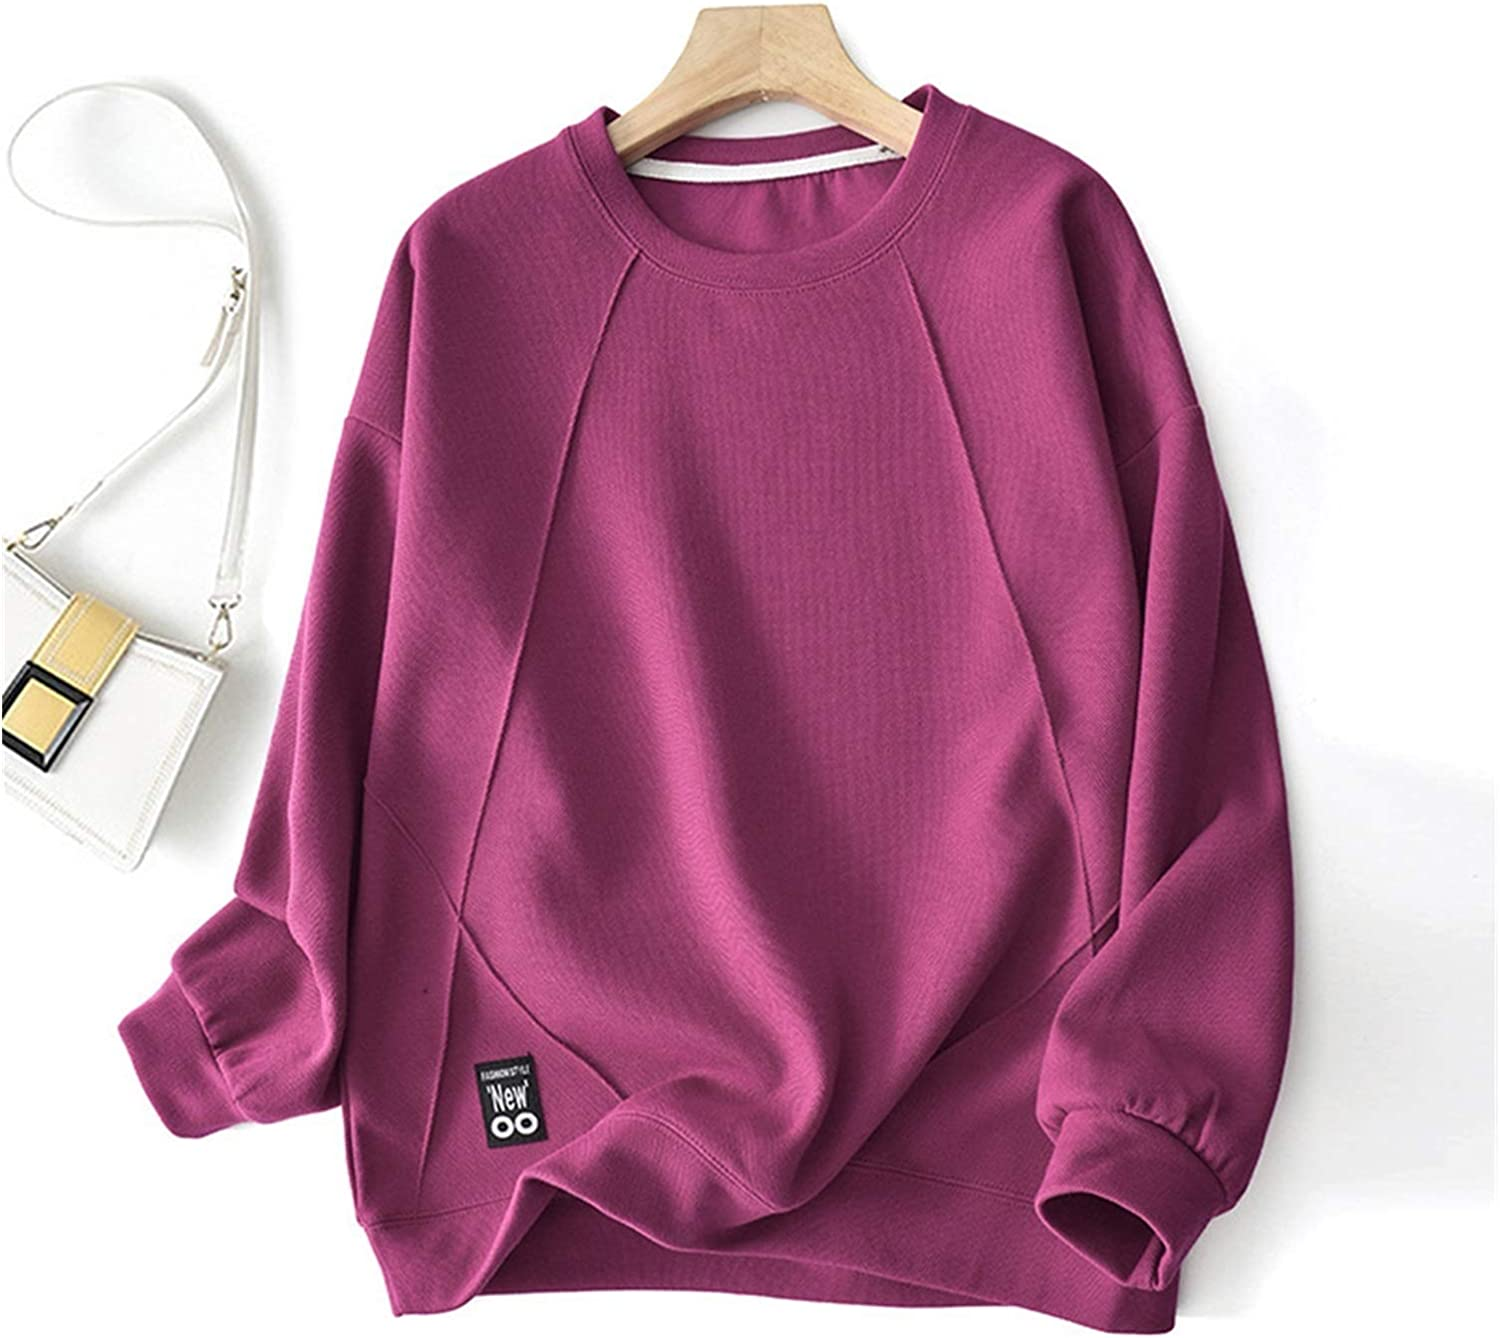 Limited price ZHANGYAN Credence Fashion Hoodies Pullover Solid Sweatshirt Loose Hooded